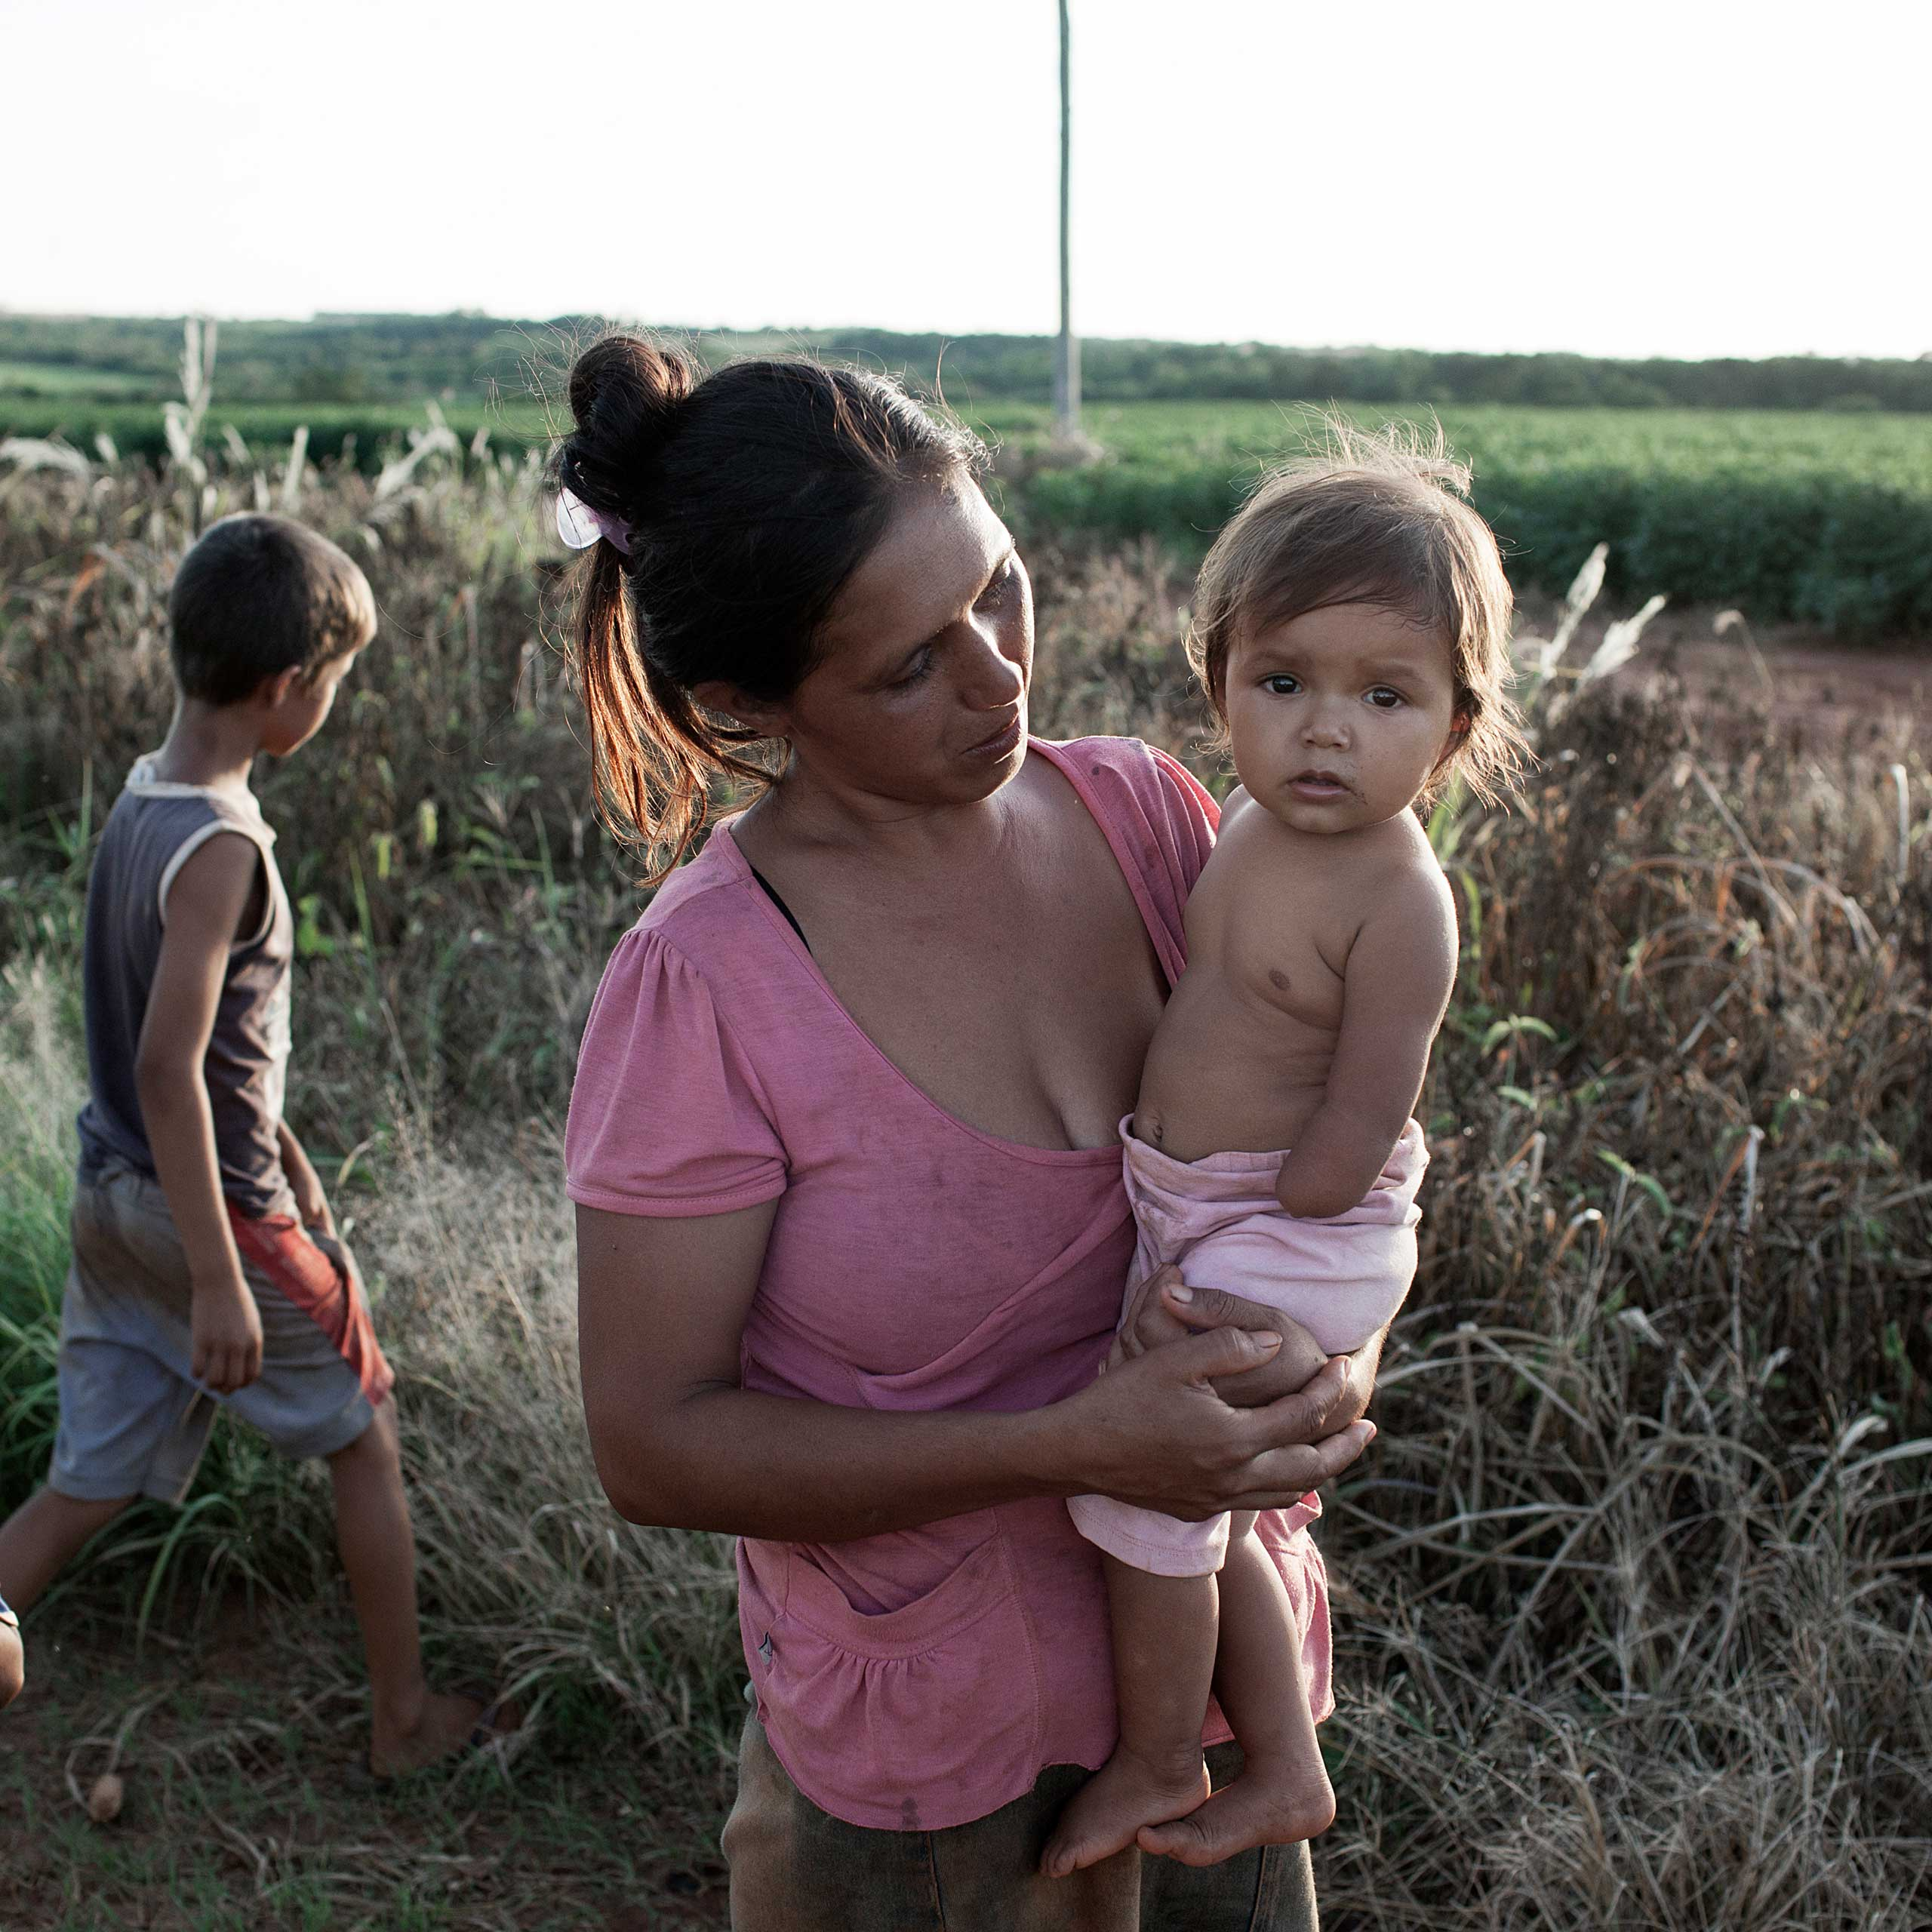 Magdalena Prete, 30, with her daughter Andrea Natalia, who was born without an arm. Prete believes this was due to exposure to pesticides while she was pregnant. The family lives in a highly impoverished area surrounded by soy fields. According to some doctors the number of congenital malformations has increased dramatically in the areas where soy is planted on a mass scale.